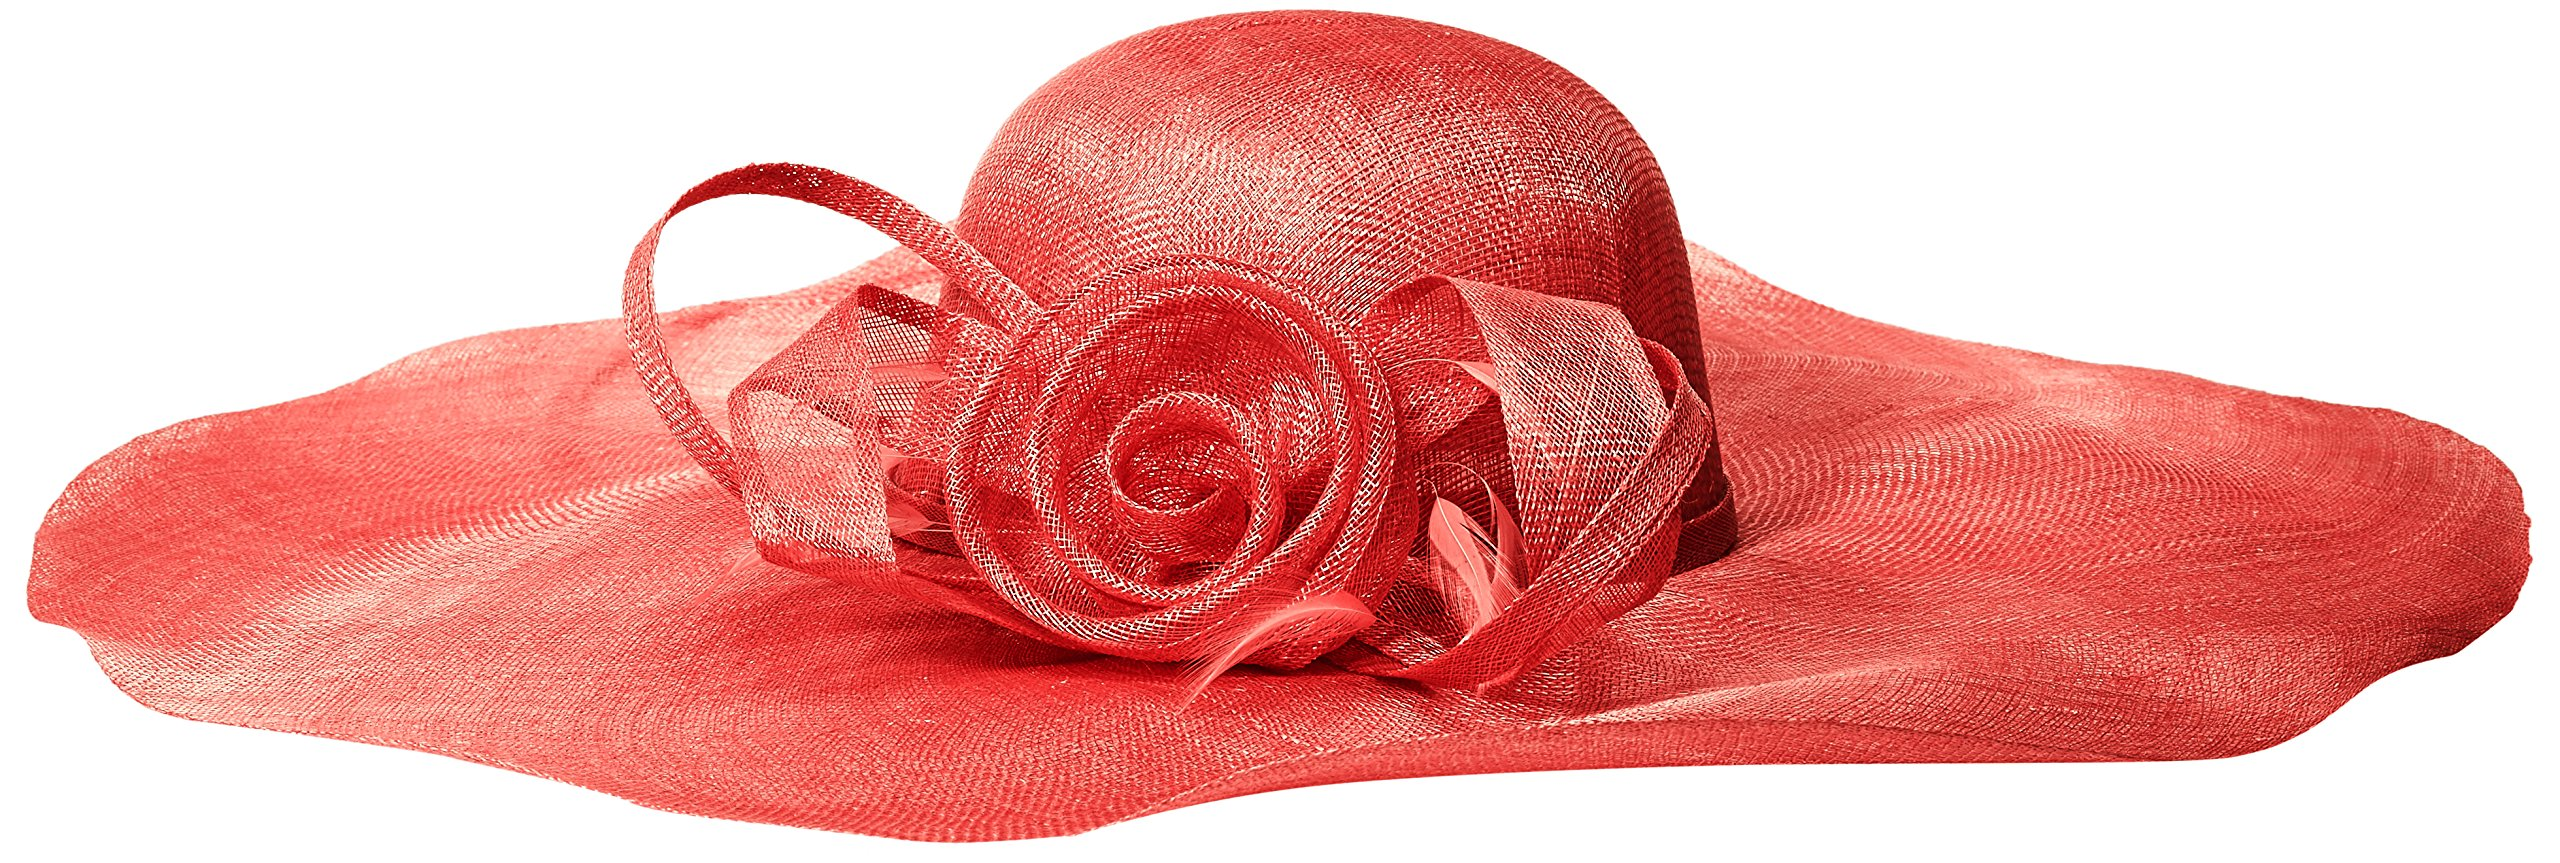 Scala Women's Big Brim Sinamay With Loops, Red, One Size